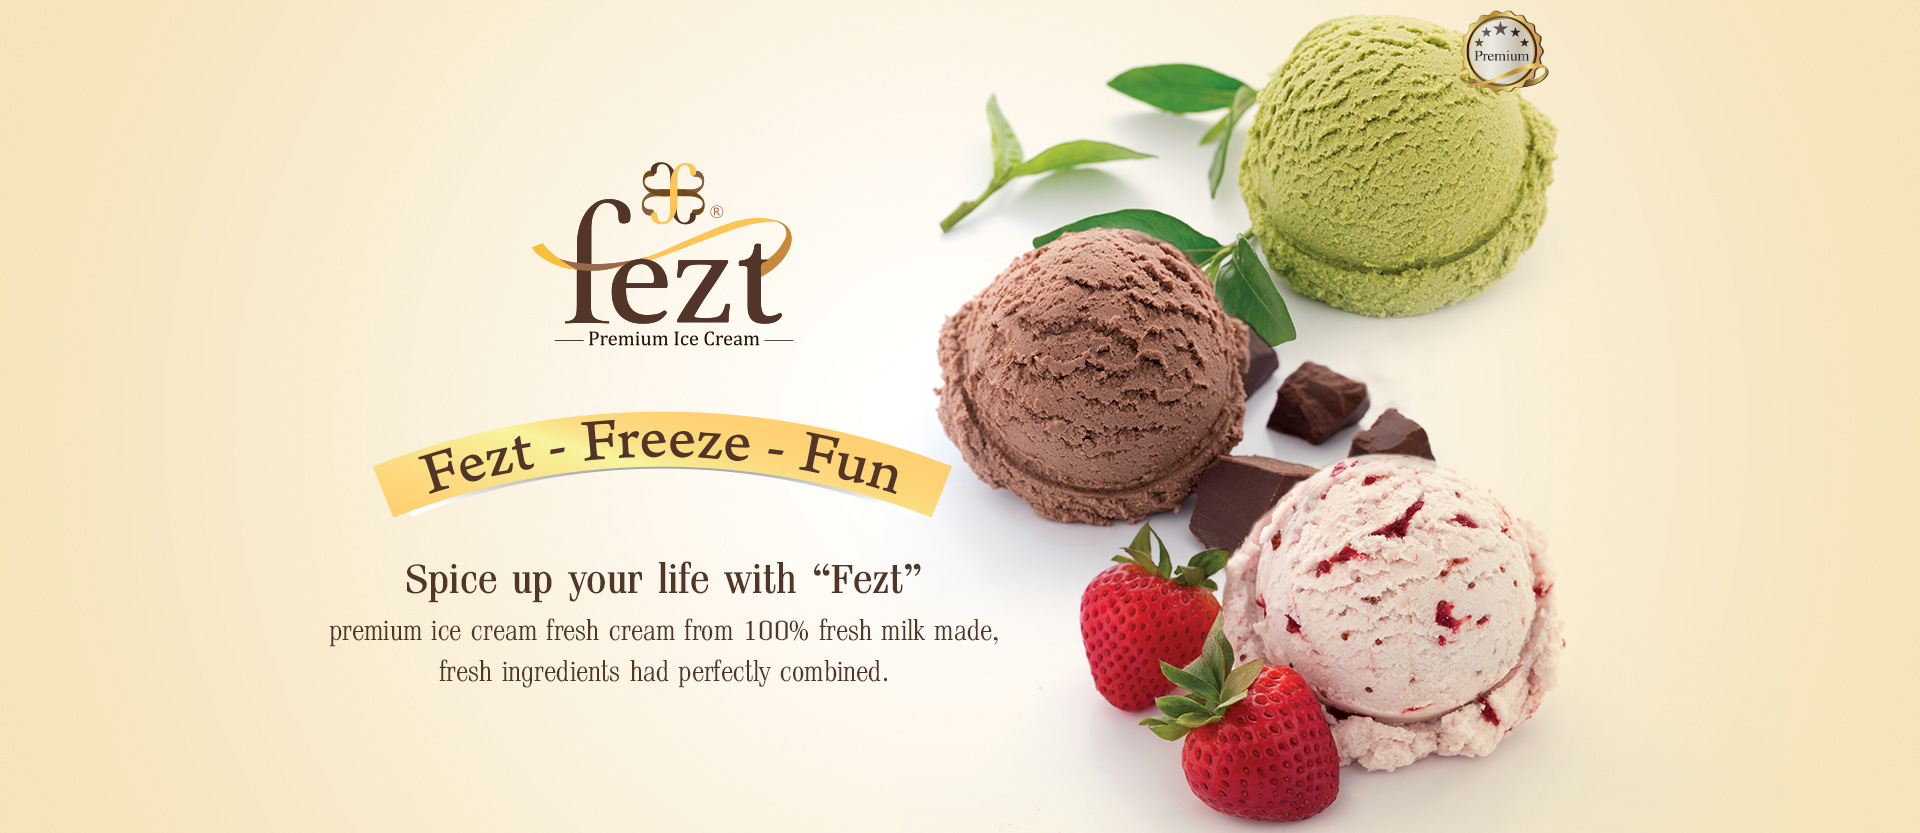 Fezt Freeze Fun Spice up your life with Fezt